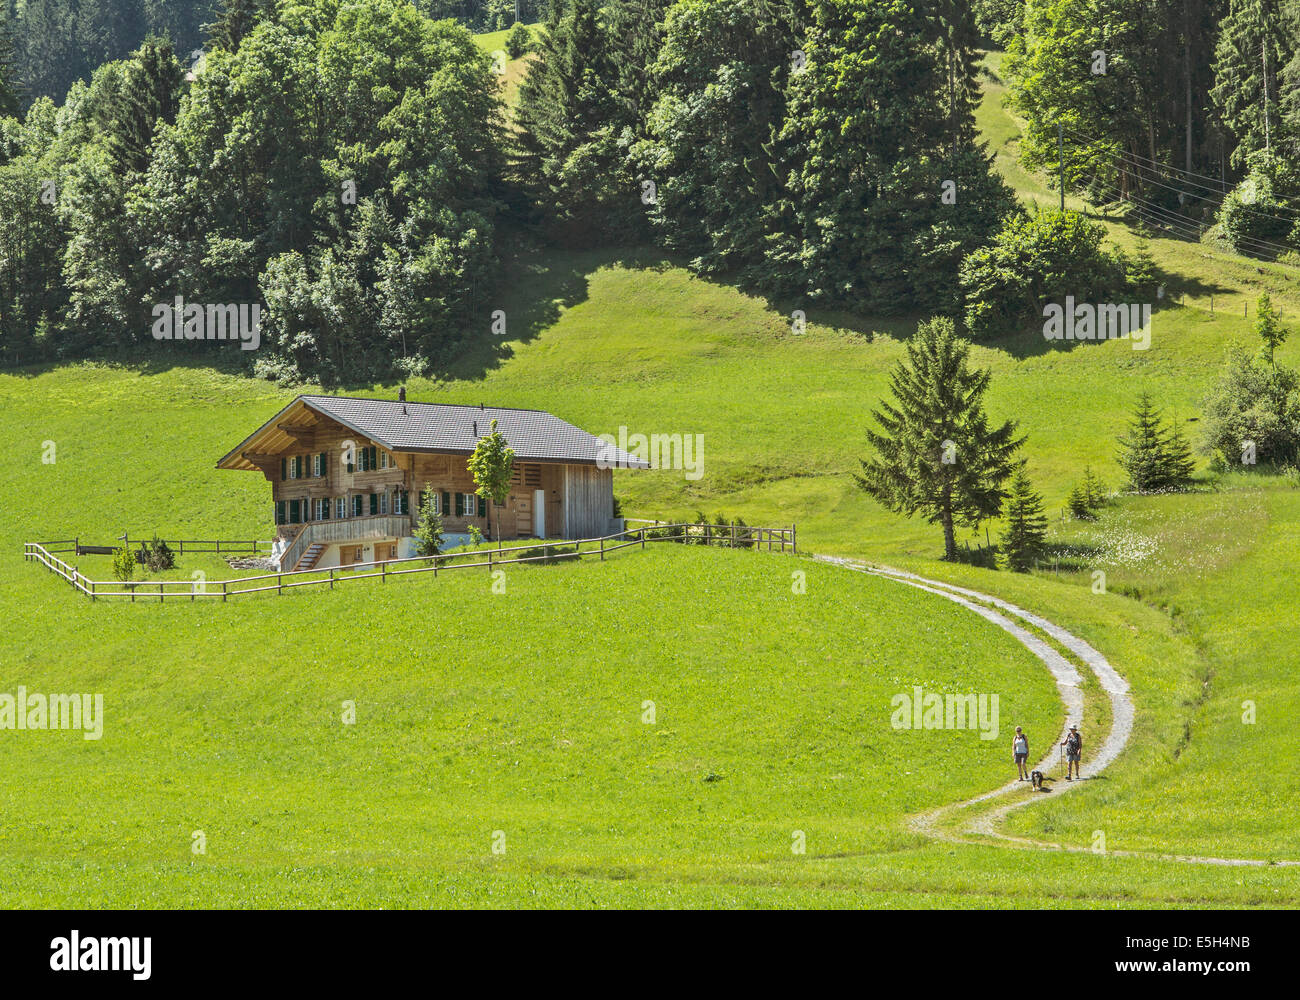 Two hikers, with their dog, leaving an isolated rural chalet in central Switzerland - Stock Image